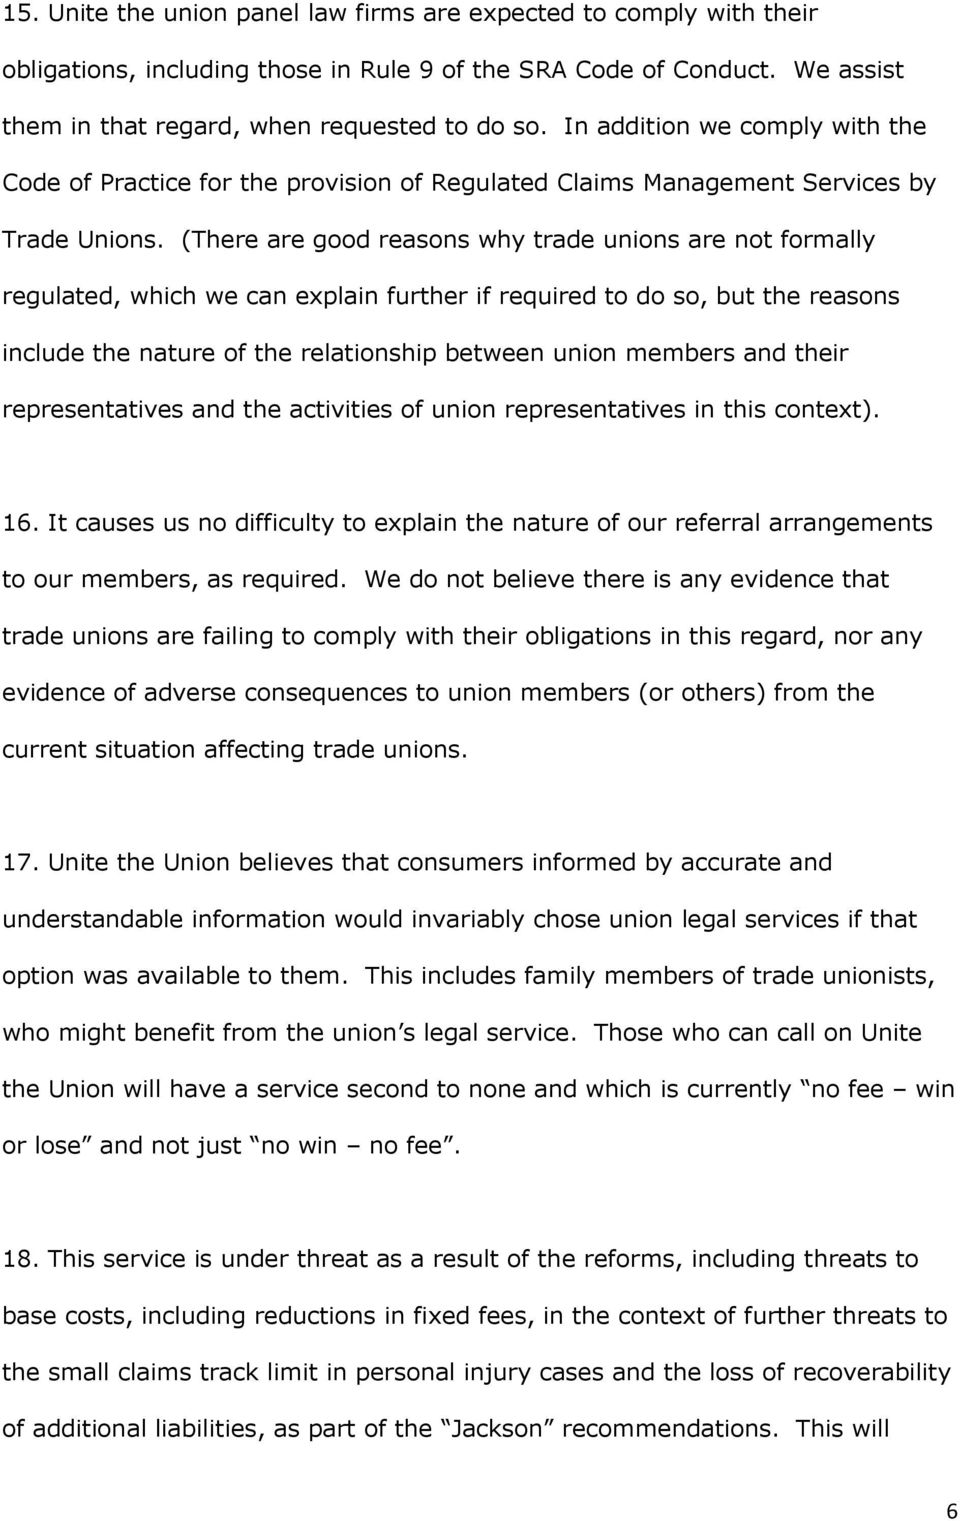 (There are good reasons why trade unions are not formally regulated, which we can explain further if required to do so, but the reasons include the nature of the relationship between union members